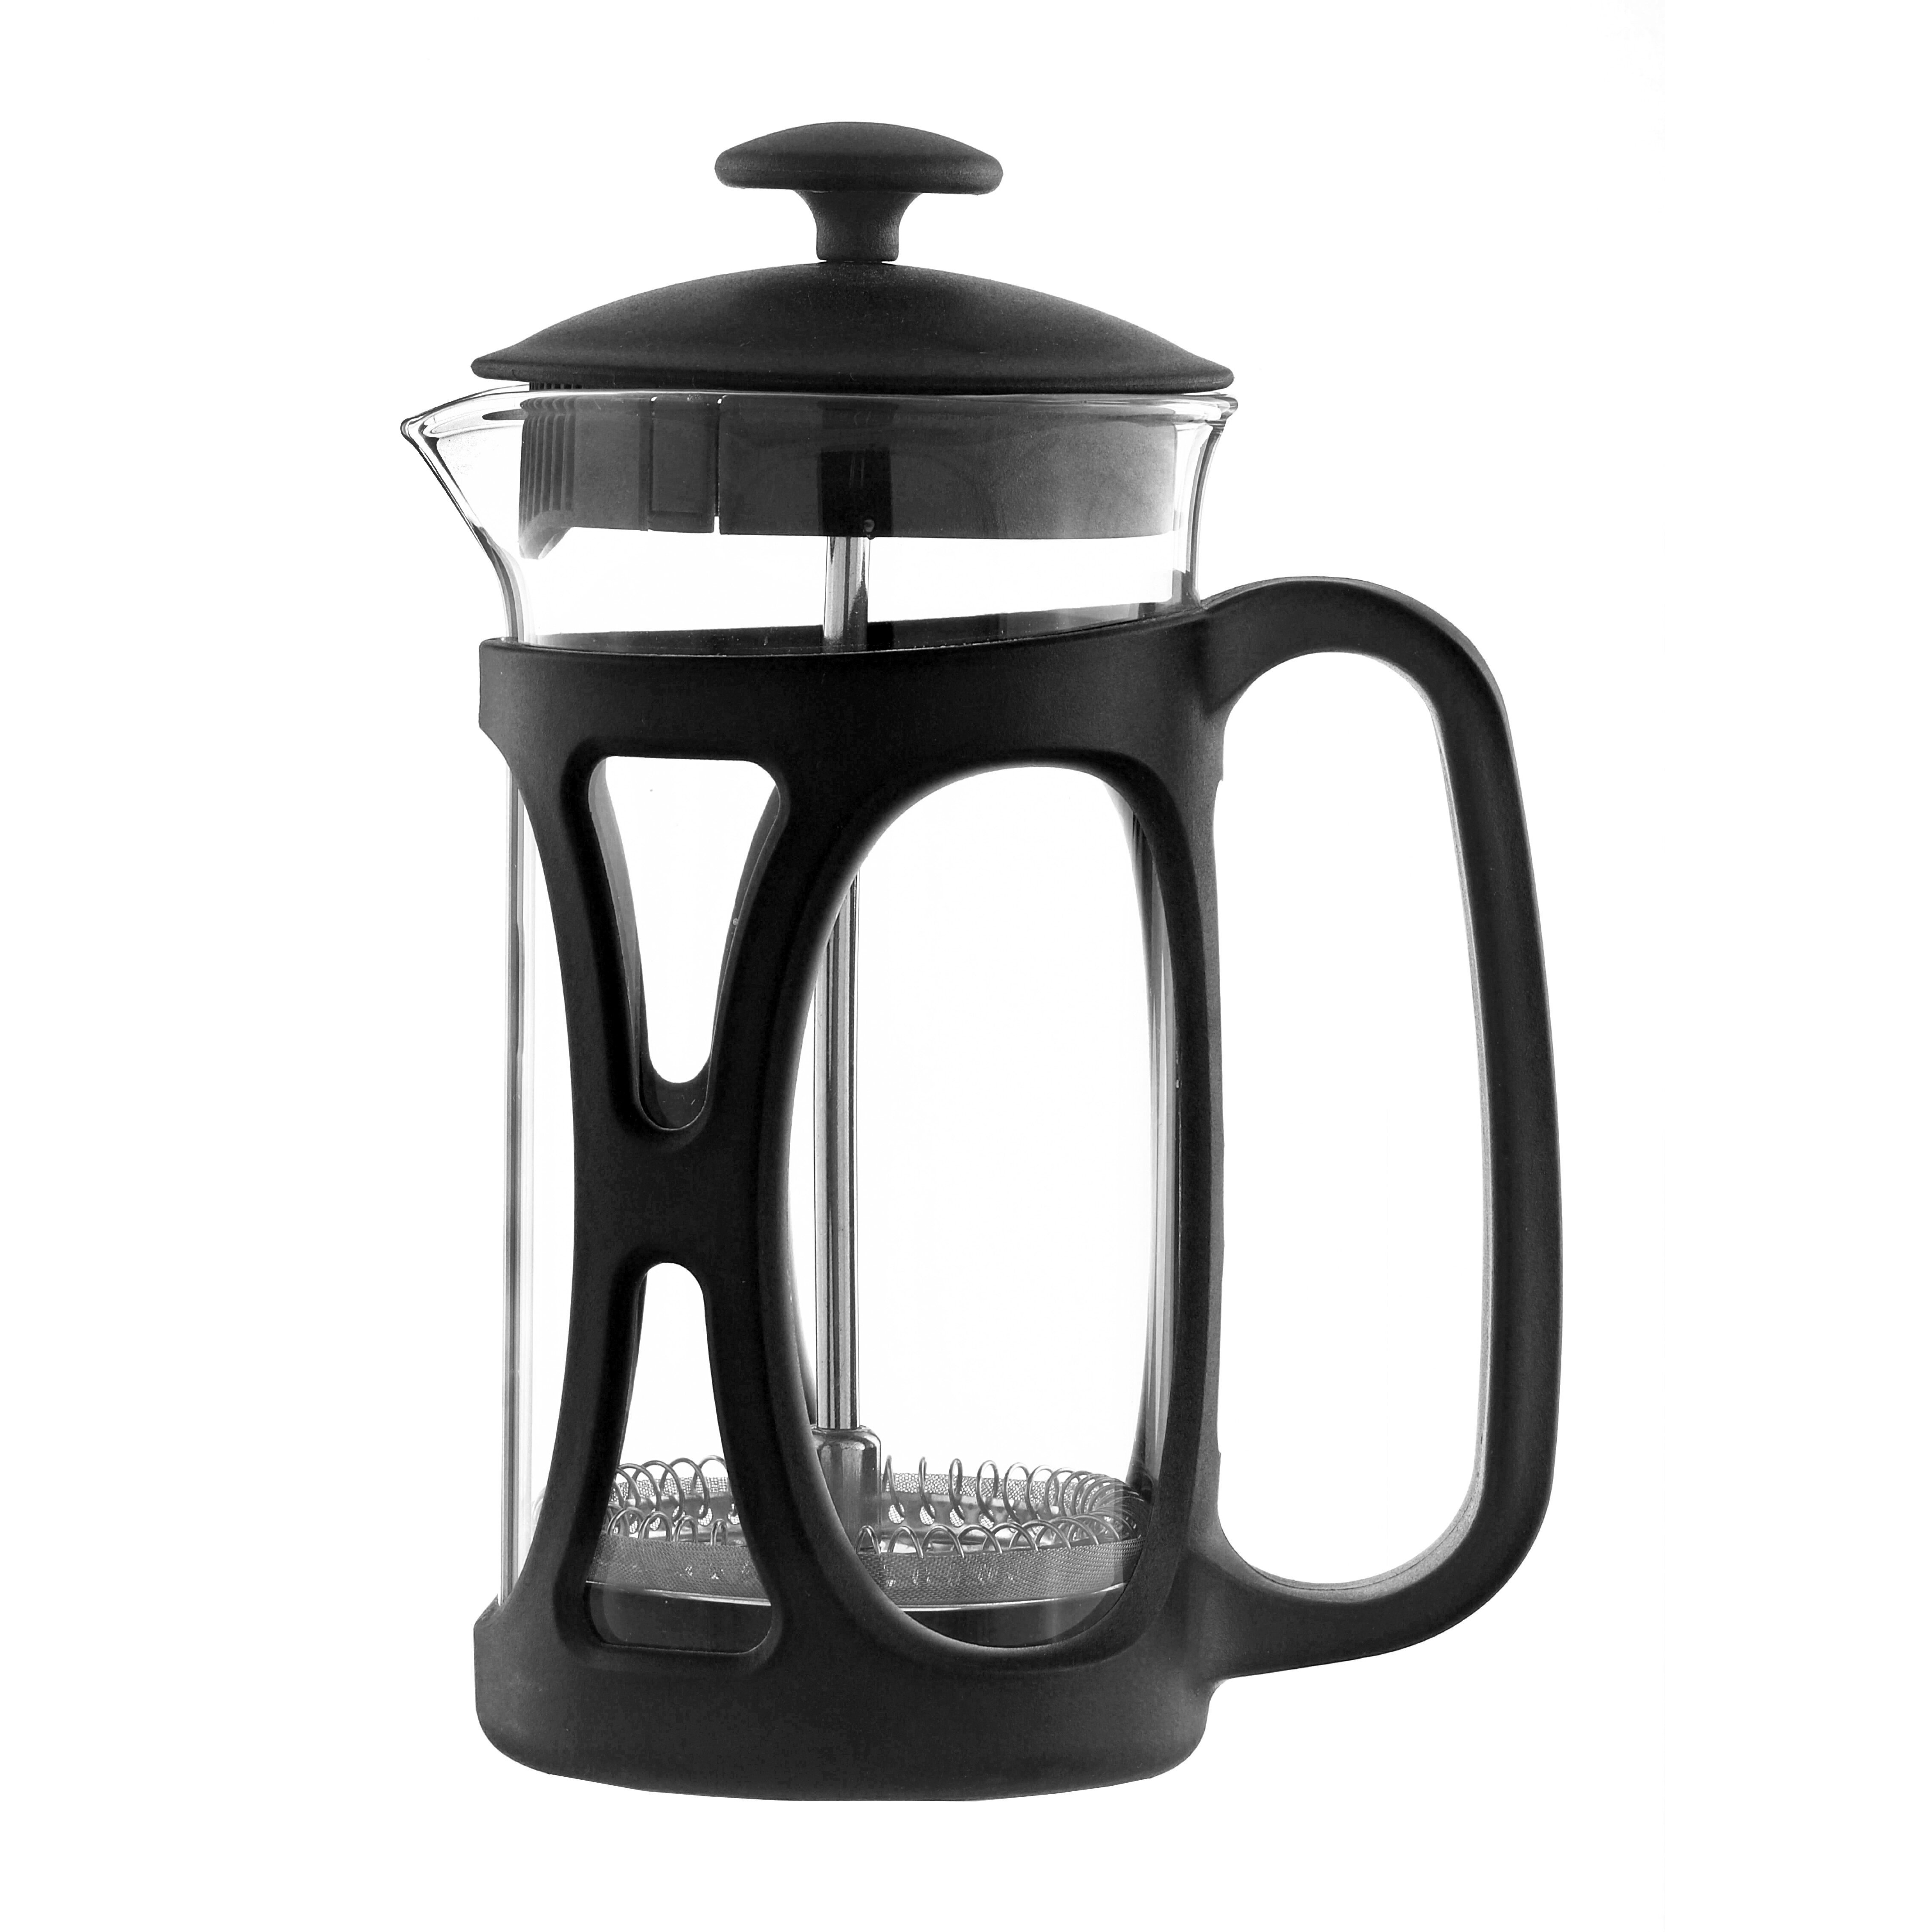 Bed bath beyond french press - Grosche Basel French Press Coffee Maker Reviews Wayfair